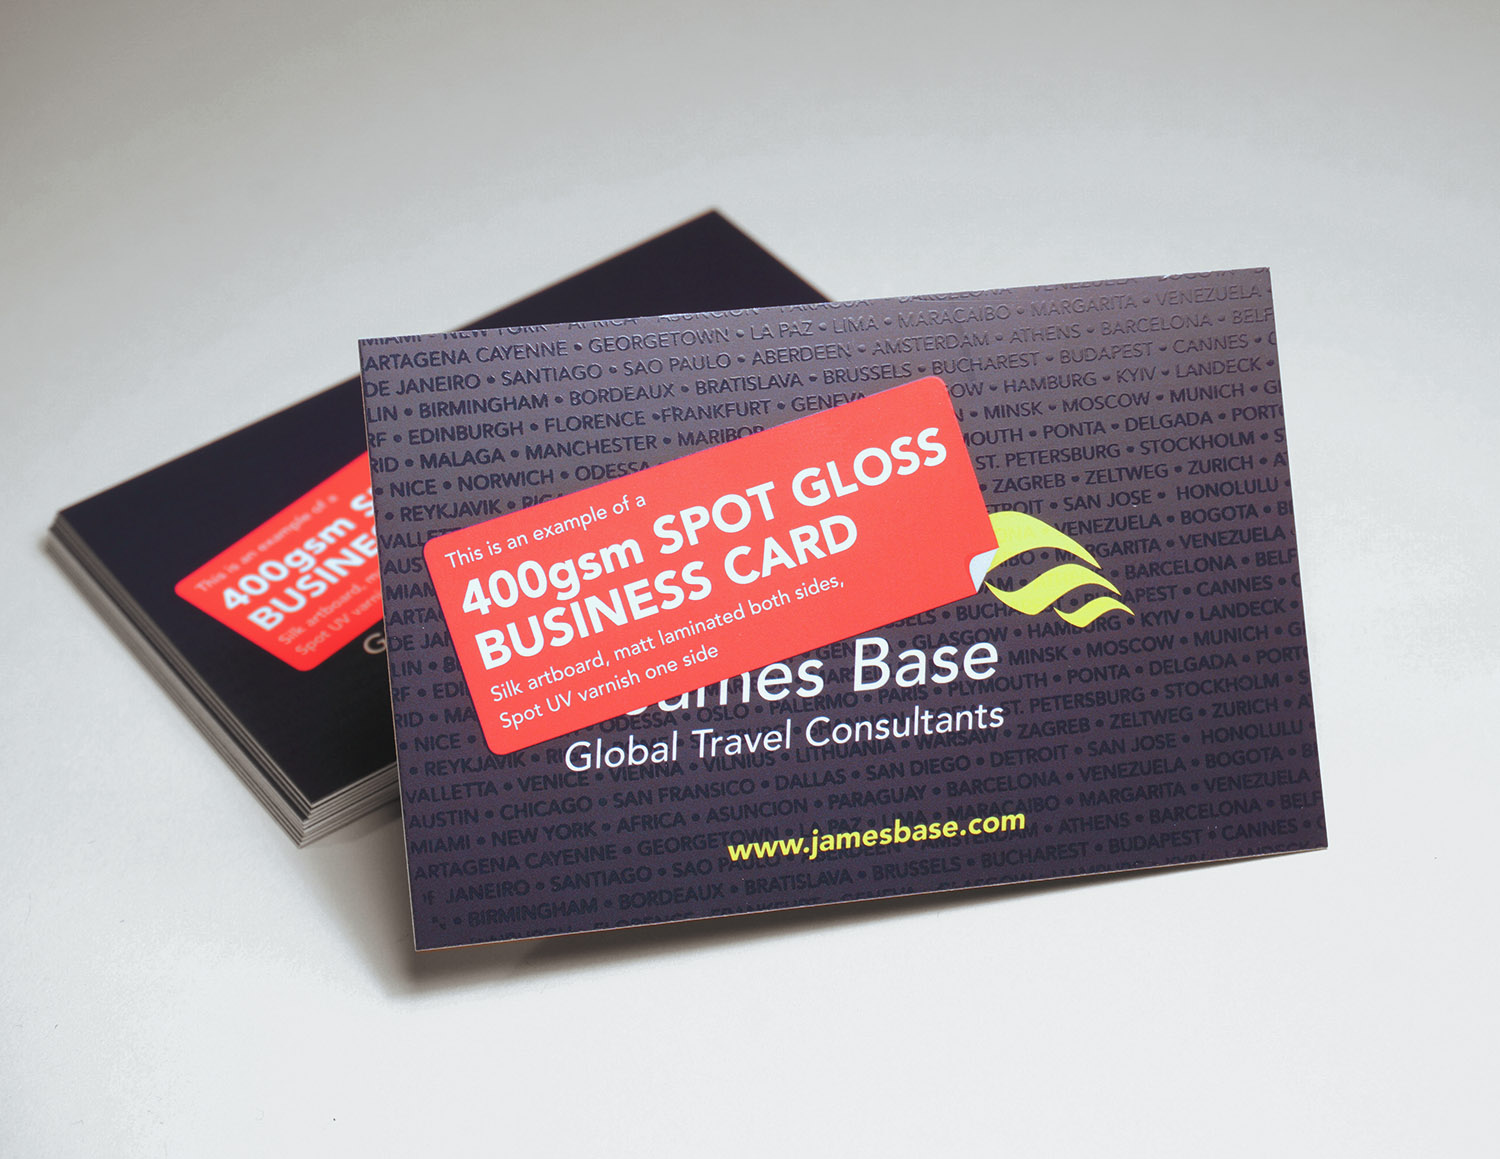 Business Cards | Imagine That | Design, Web, Print, Signage